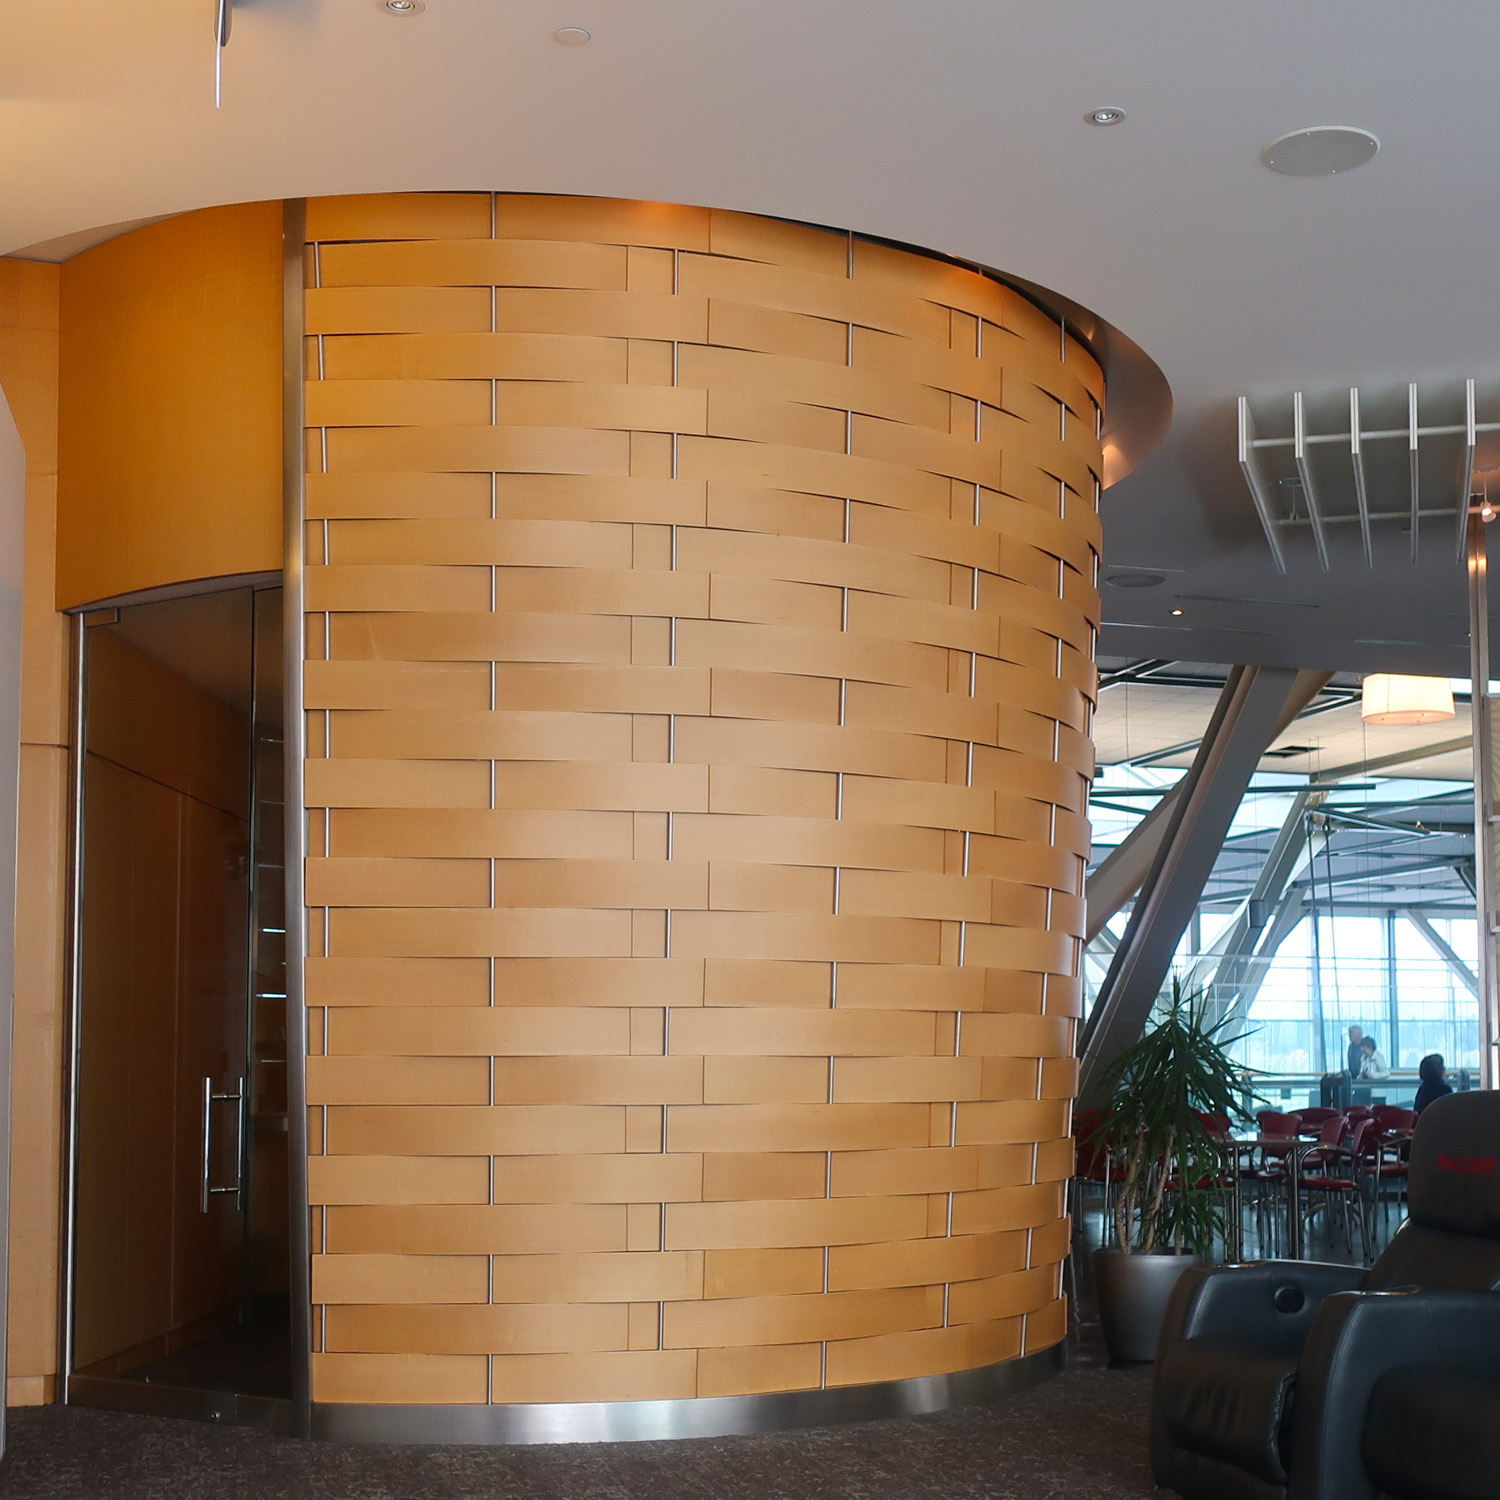 Meeting Room - Air Canada Lounge (USA) - Vancouver  Photo: Calvin Wood